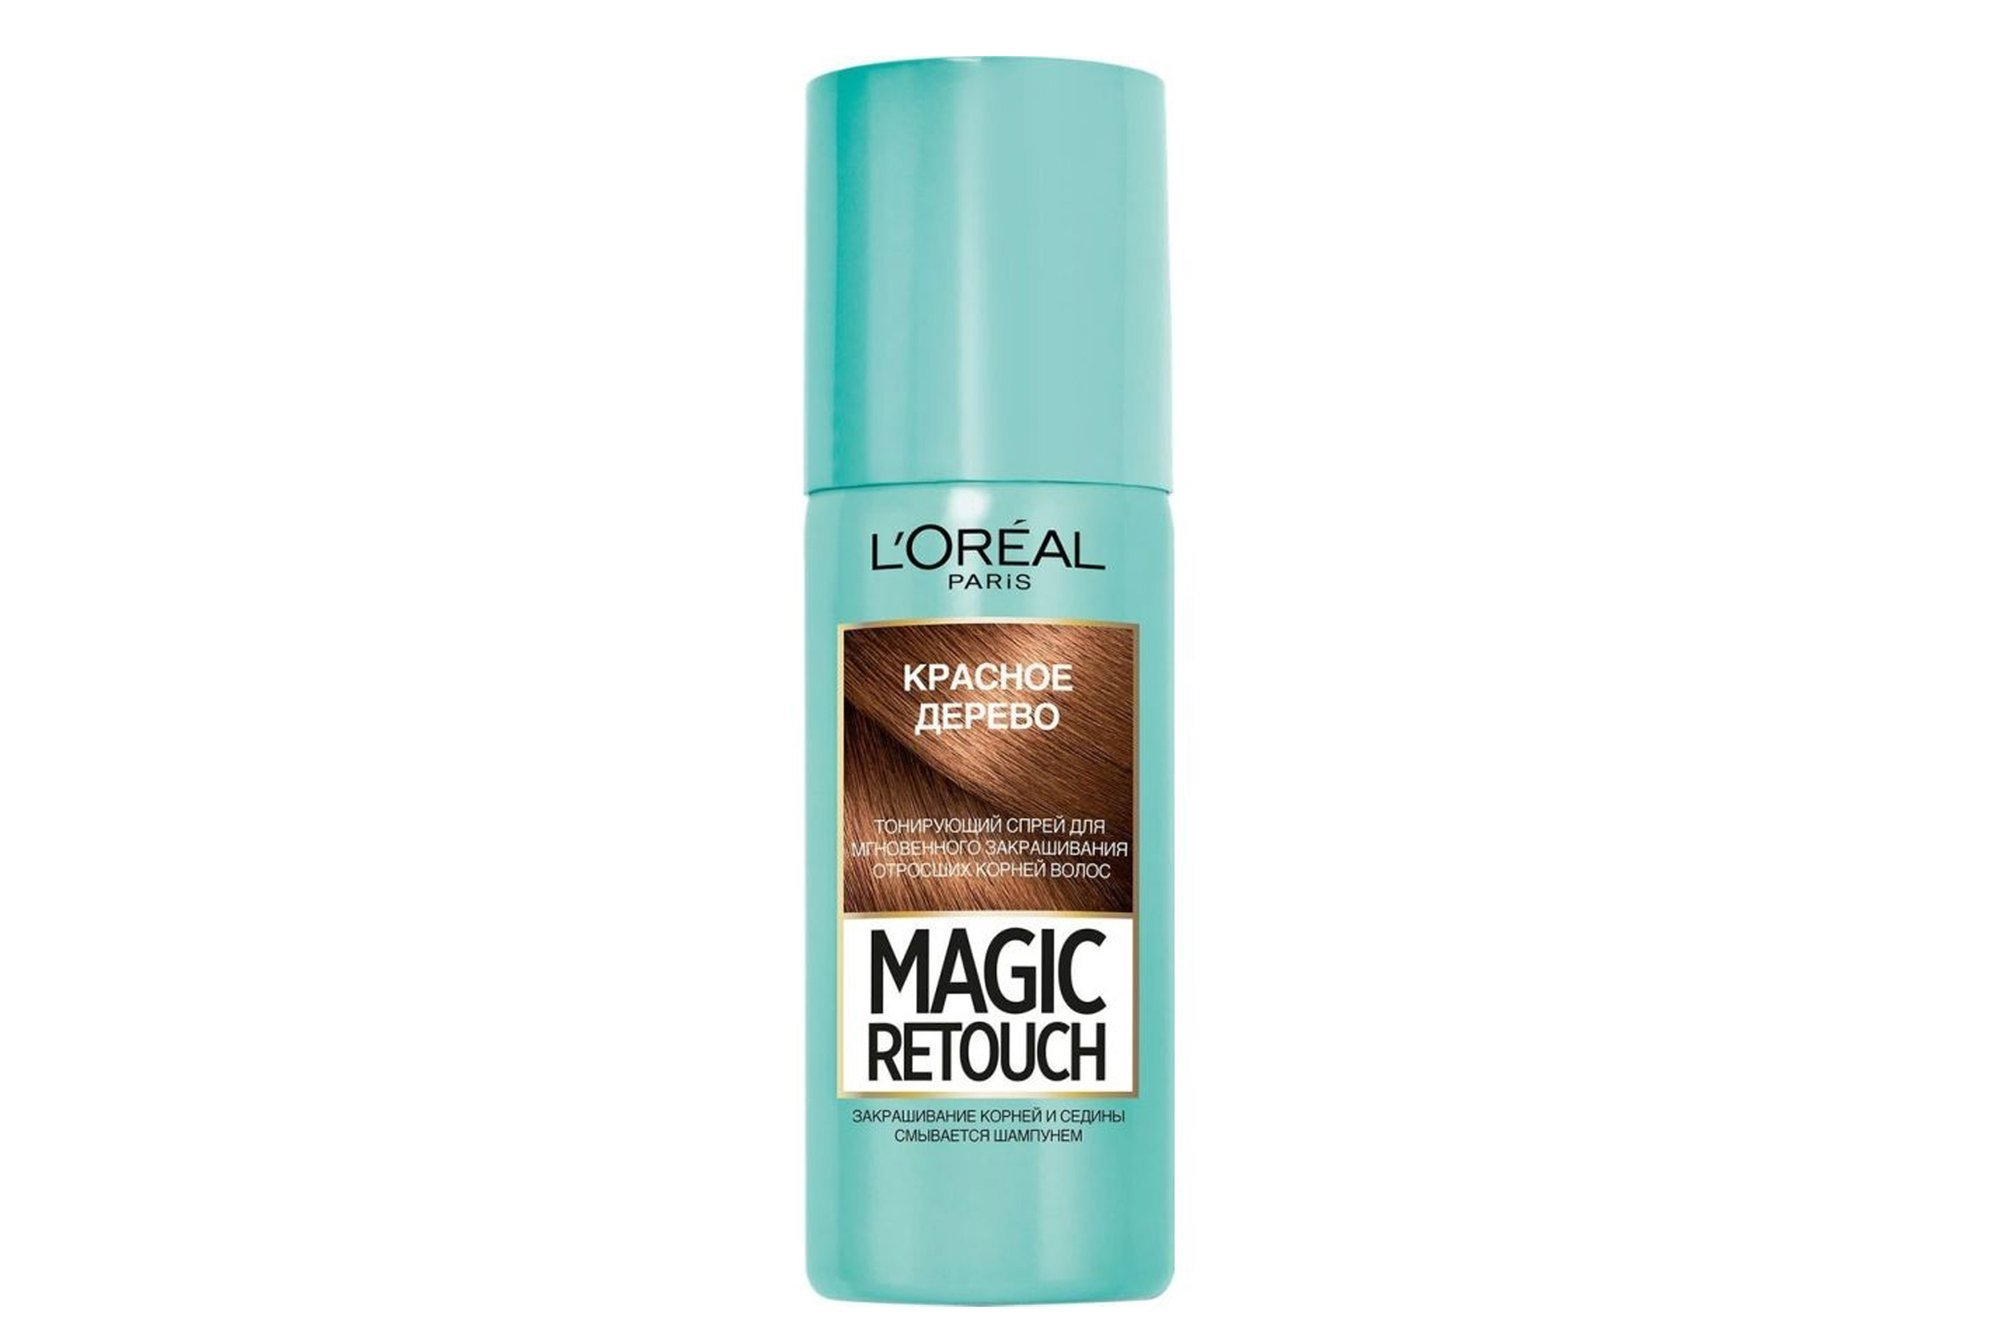 L'Oreal Magic Retouch Mahagoni Braun Temporäres Instant Root Concealer Spray